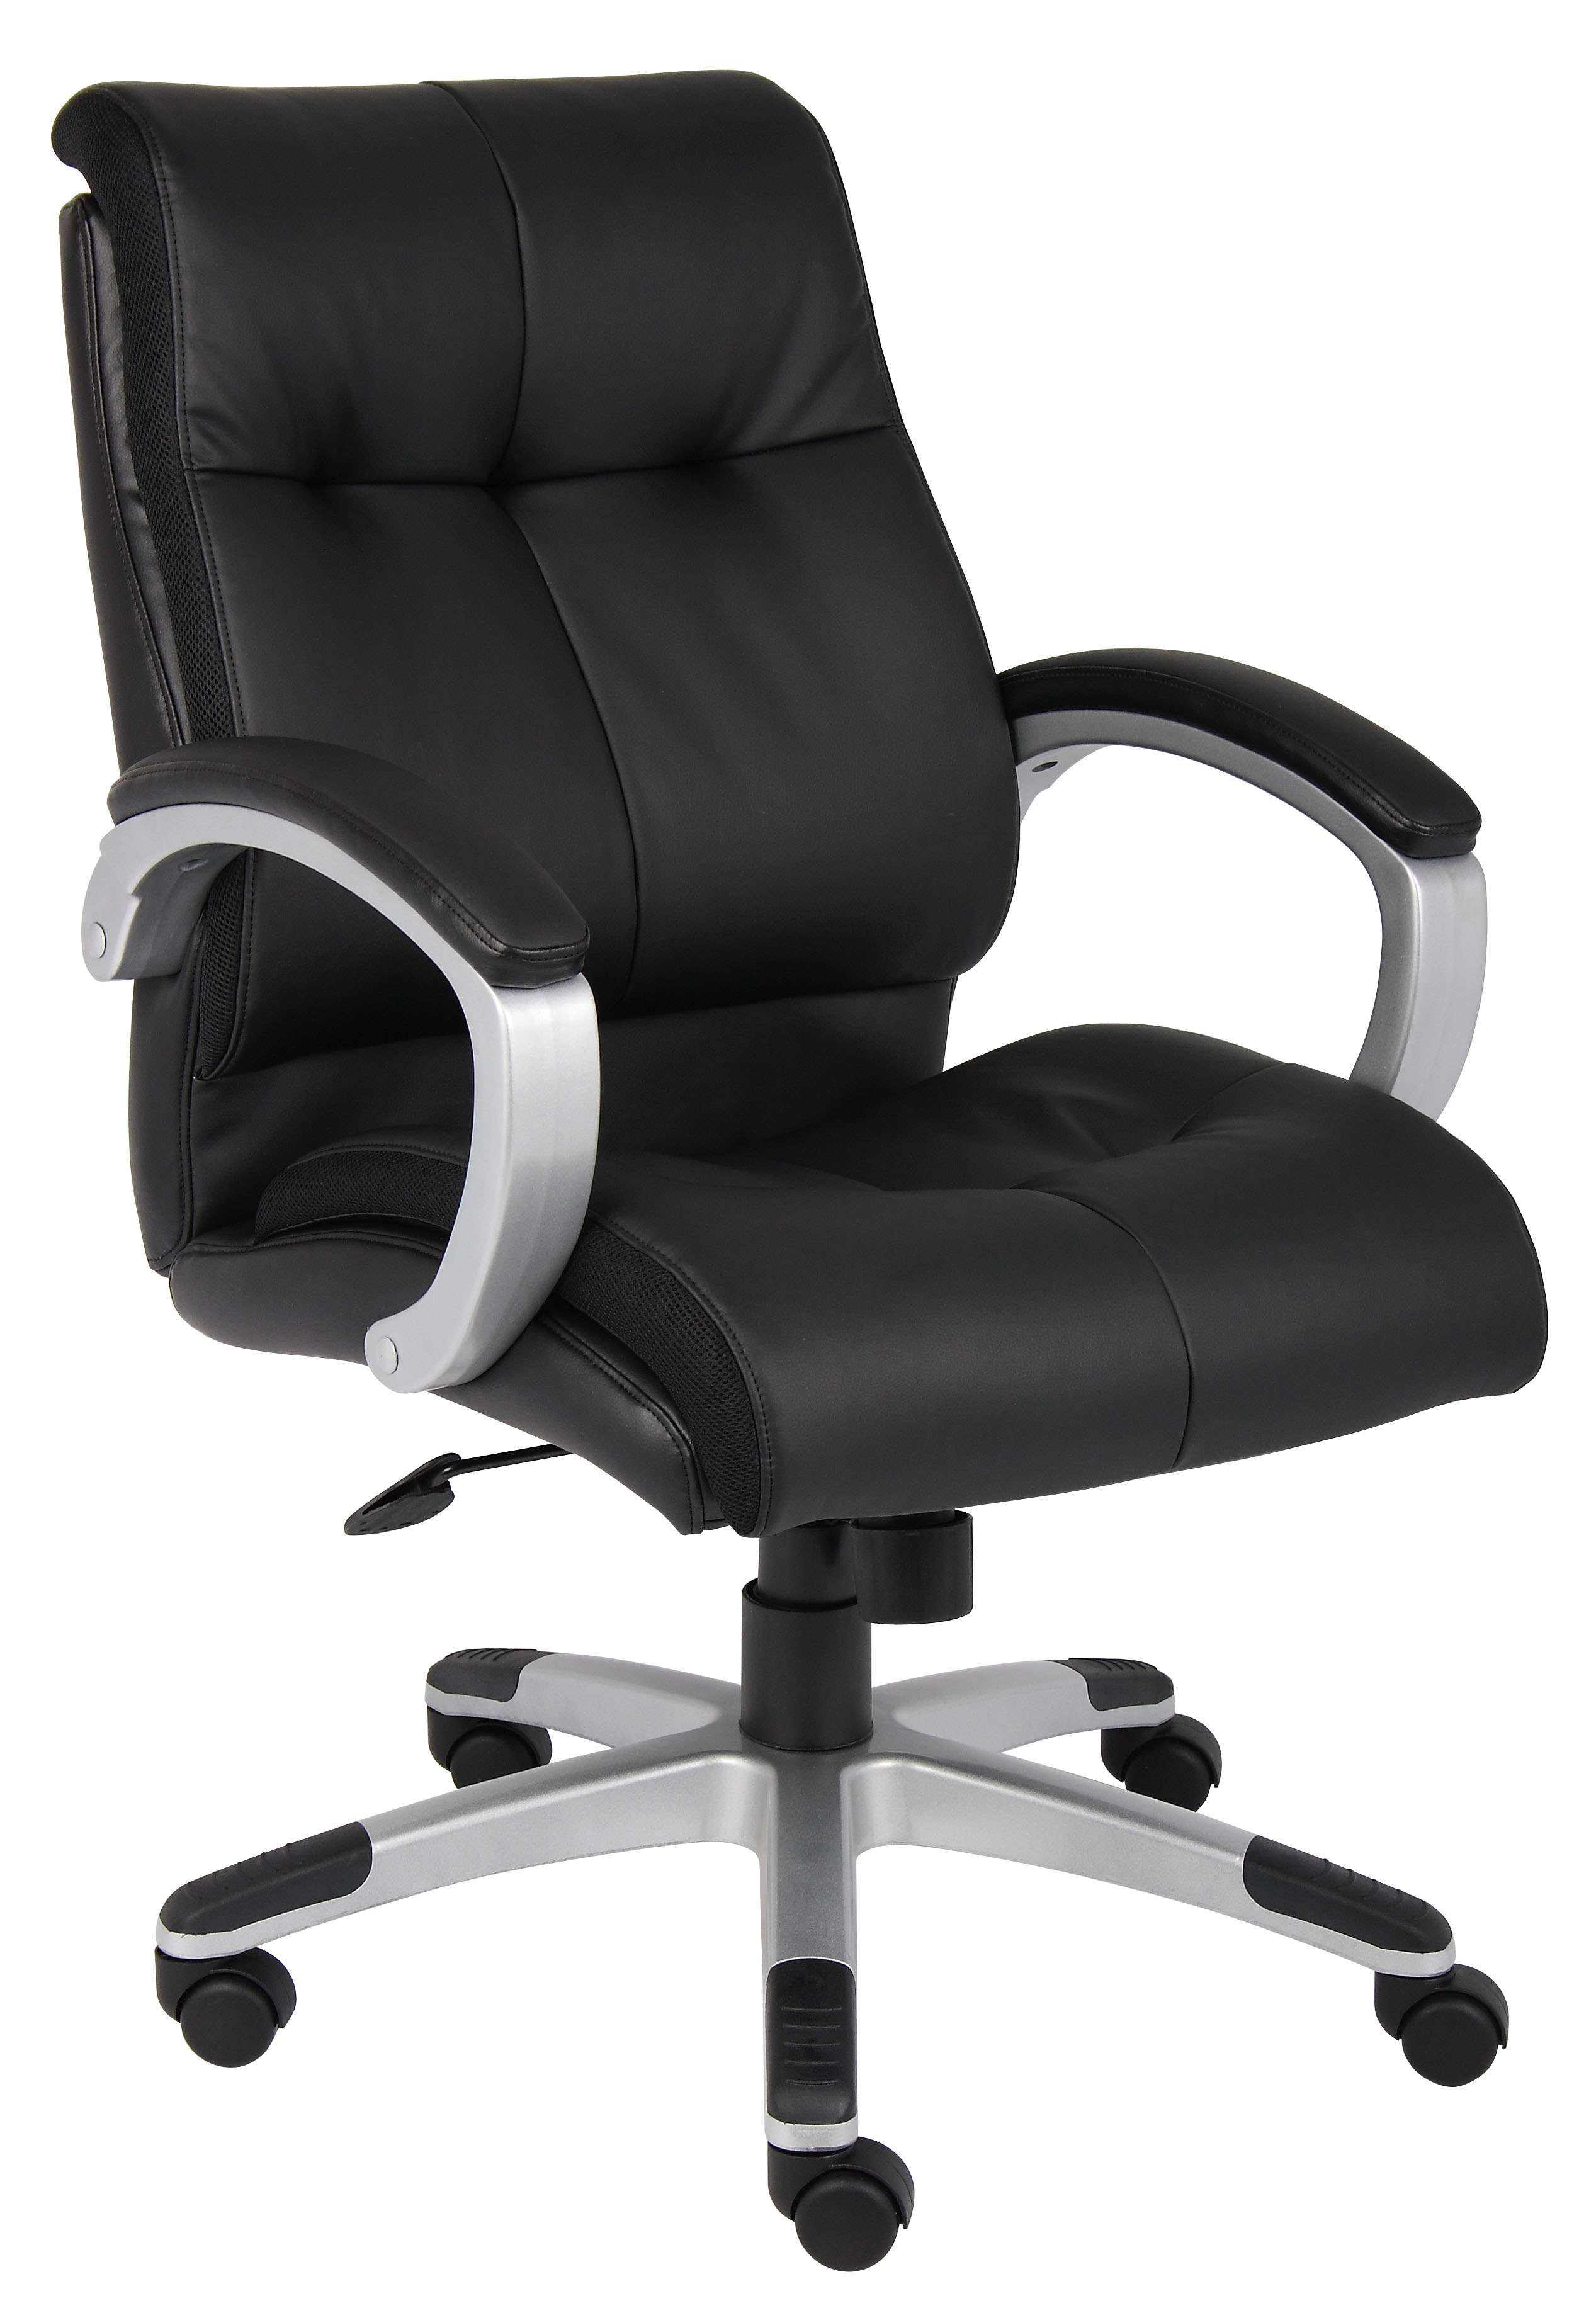 Black Plush Mid-Back Executive Chair in Silver Finish